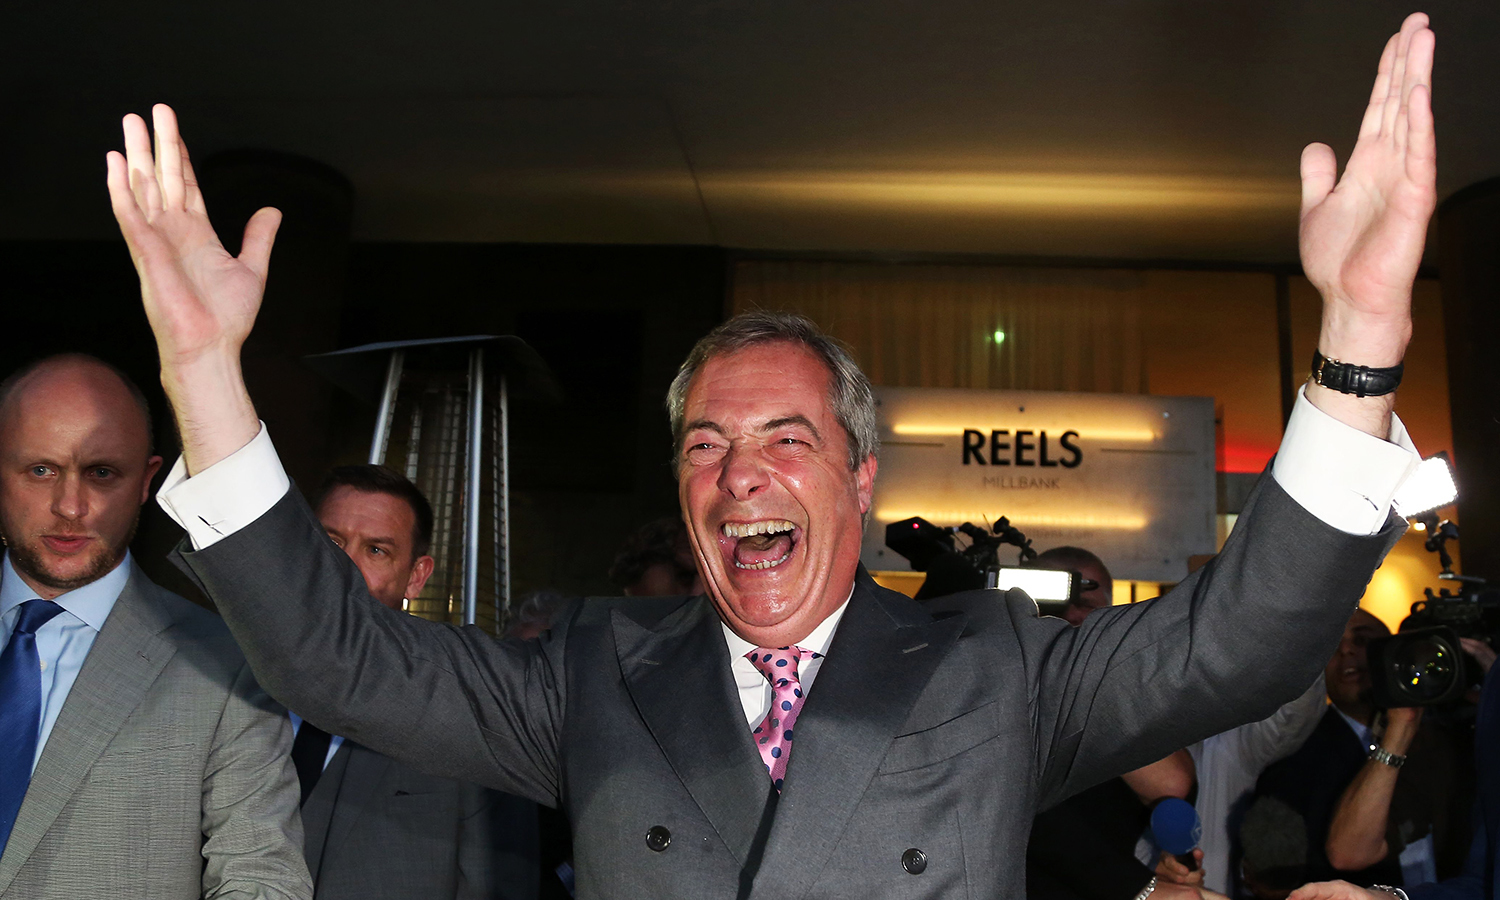 """Leader of the United Kingdom Independence Party (UKIP), Nigel Farage reacts at the Leave.EU referendum party at Millbank Tower in central London on June 24, 2016, as results indicate that it looks likely the UK will leave the European Union (EU). Top anti-EU campaigner Nigel Farage said he was increasingly confident of victory in Britain's EU referendum on Friday, voicing hope that the result """"brings down"""" the European Union. / AFP PHOTO / GEOFF CADDICK"""